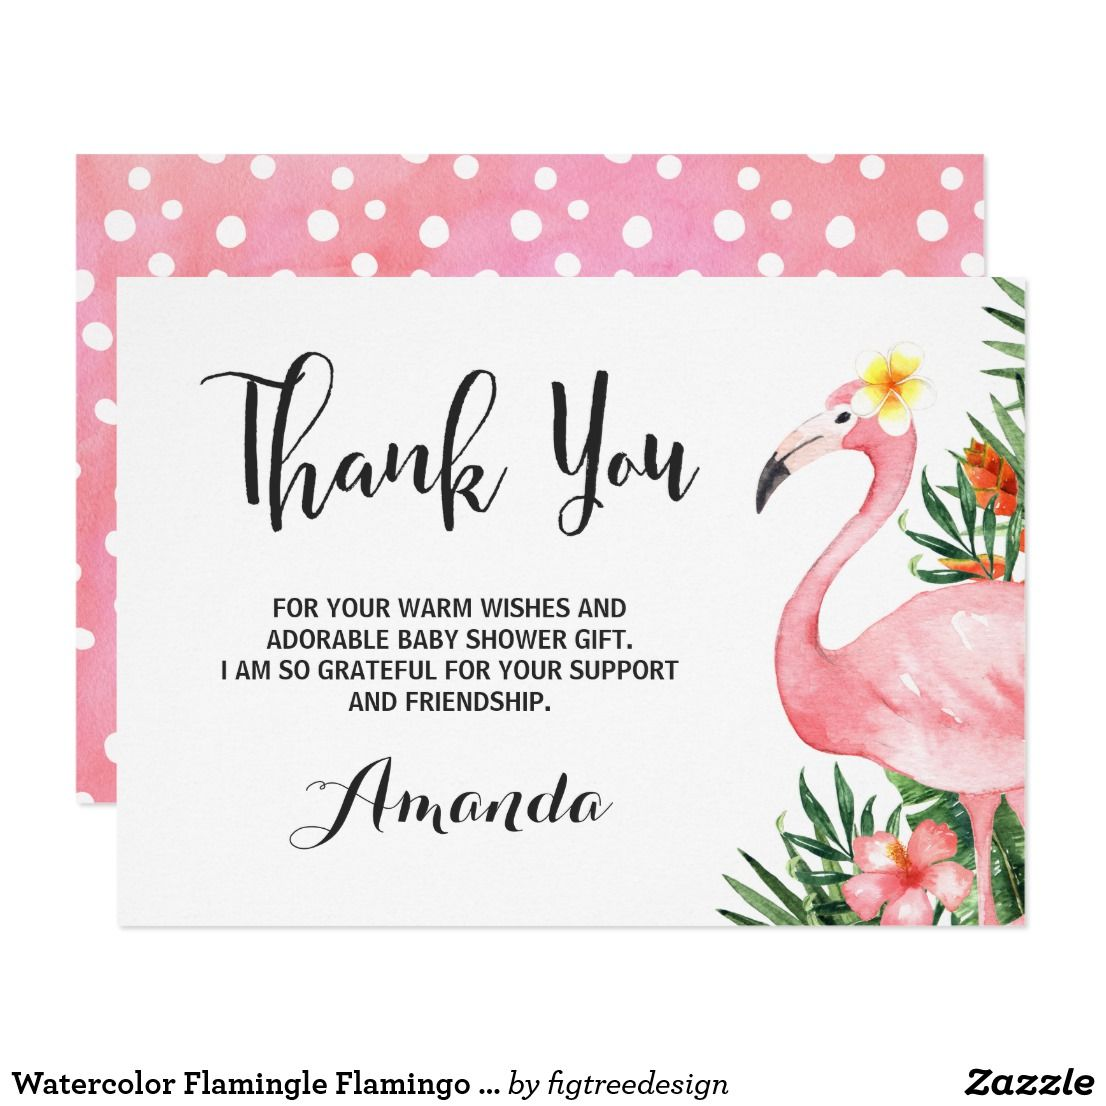 Watercolor Flamingle Flamingo Thank You Card Zazzle Com Thank You Cards Your Cards Cards